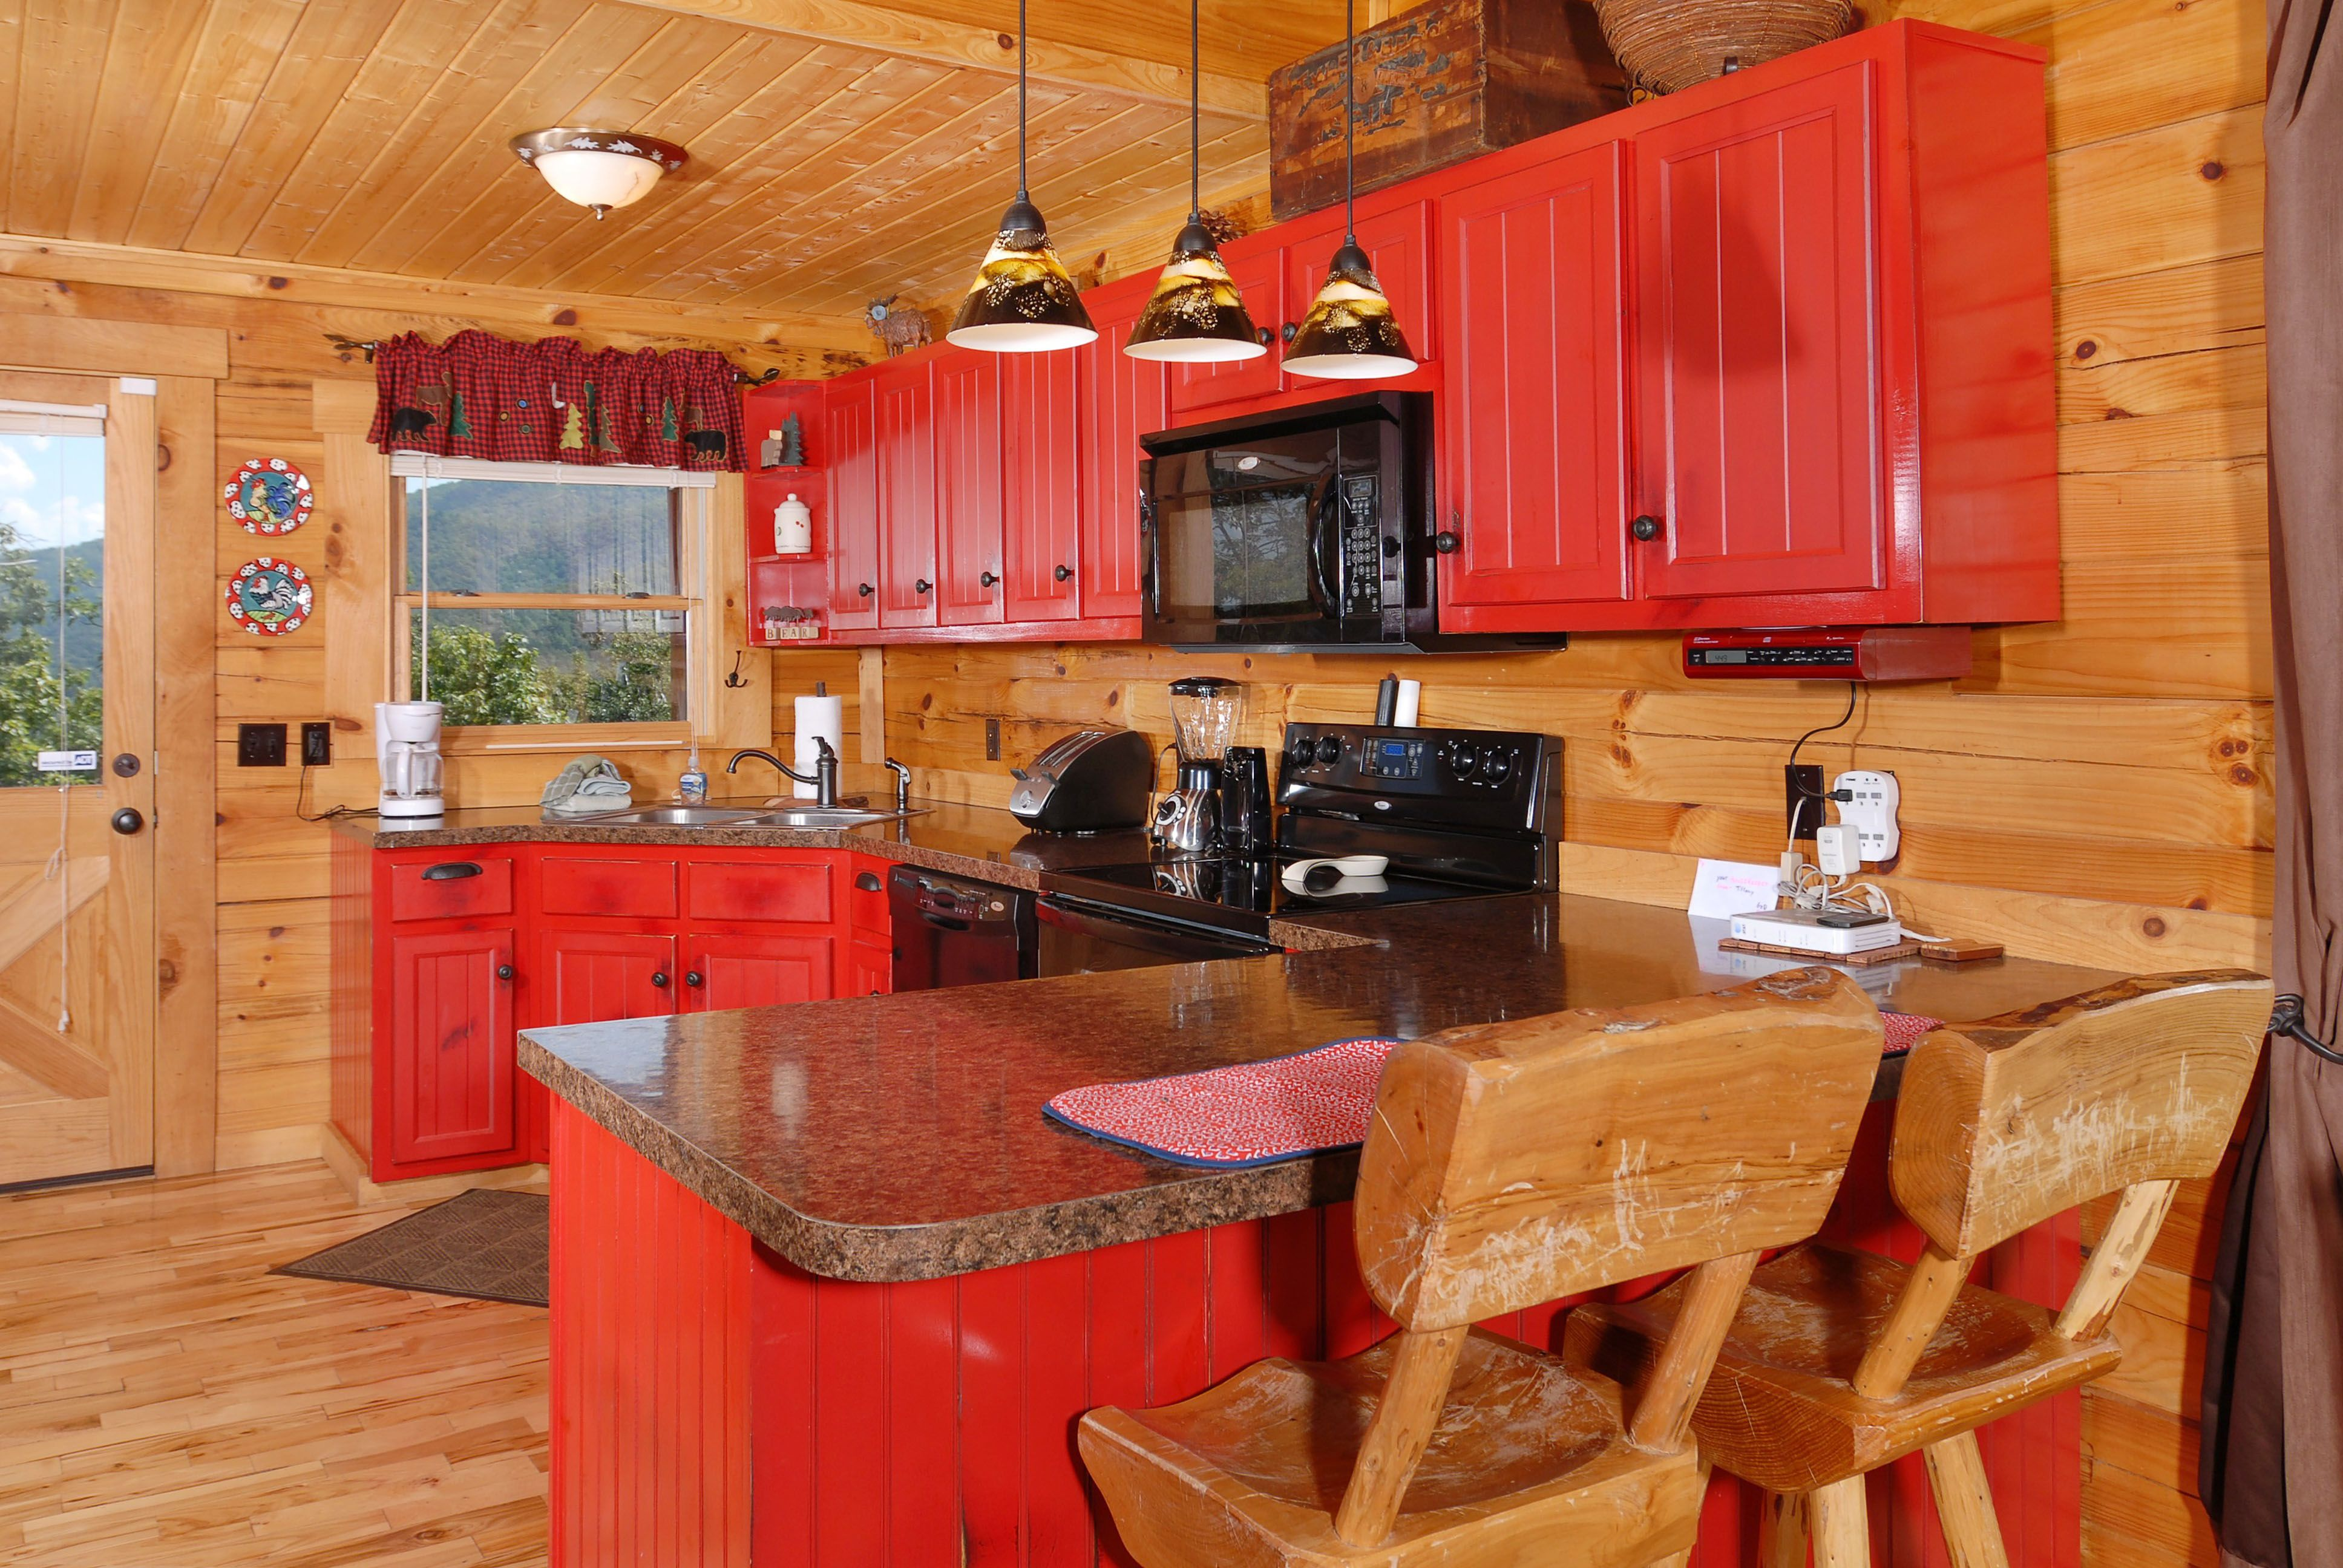 Red Cabinetry Ads Fun And Color To This Log Cabin Kitchen